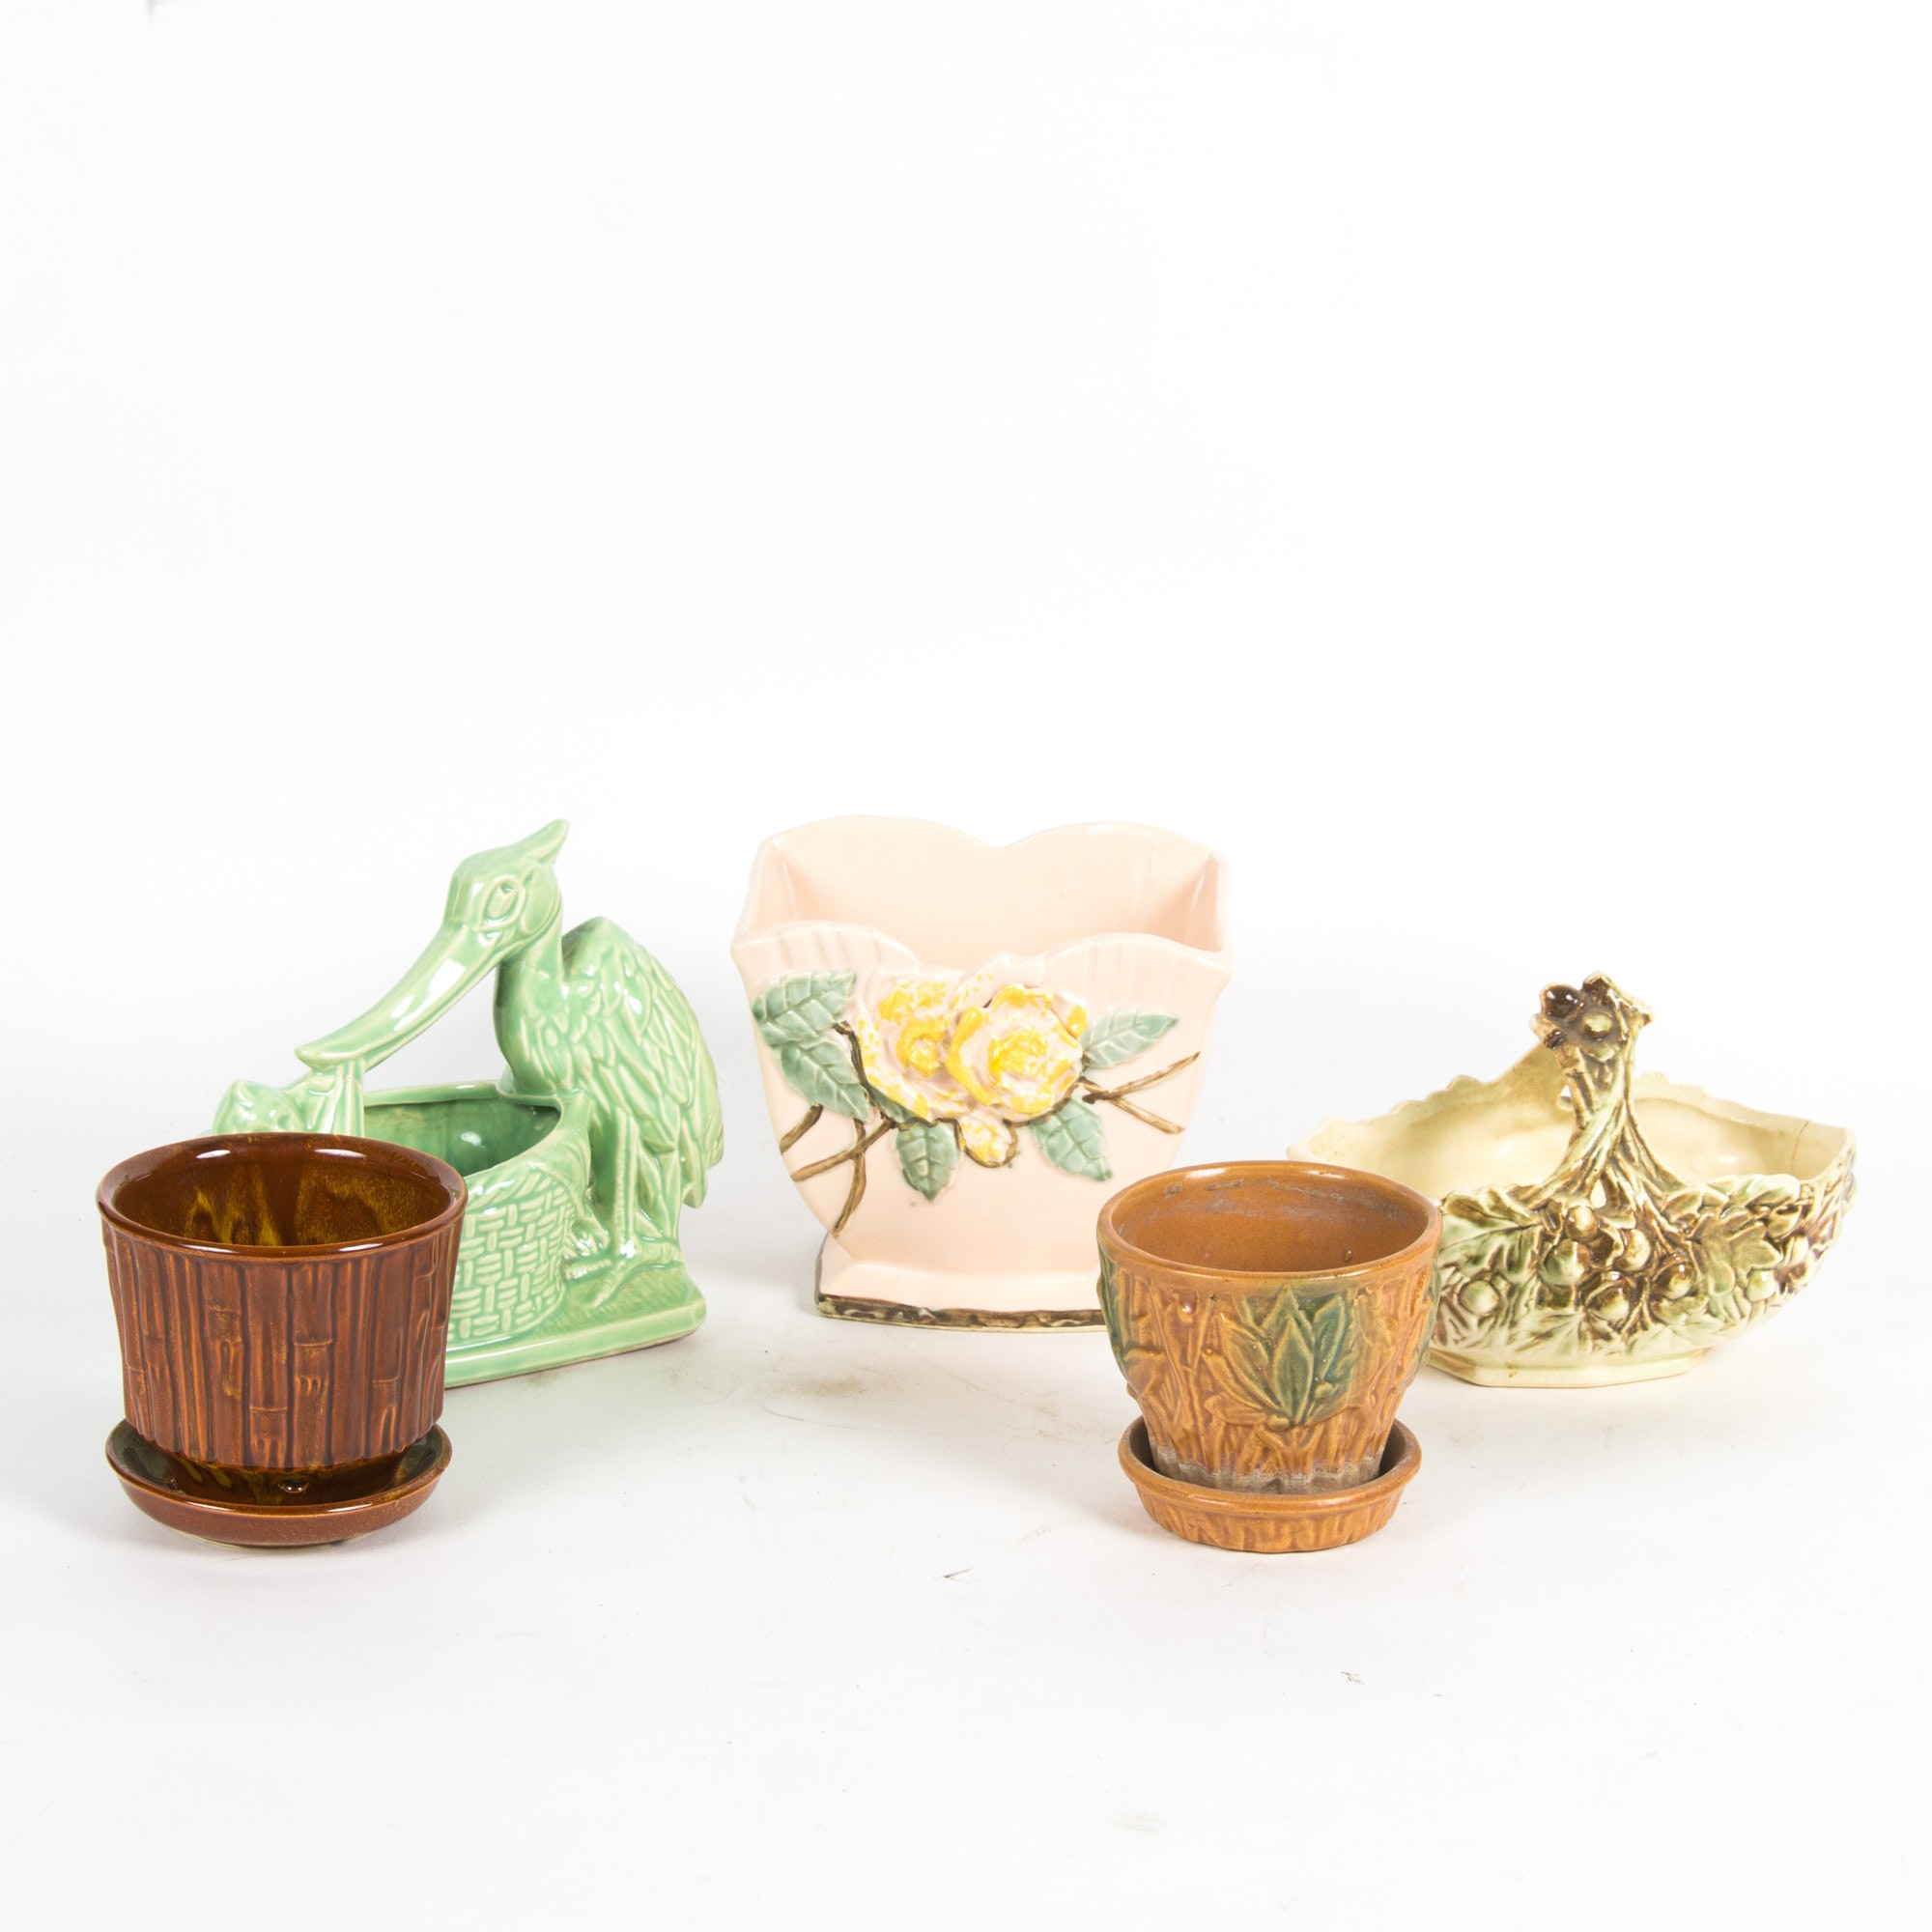 Vintage Floral and Zoomorphic Pottery featuring McCoy Pottery